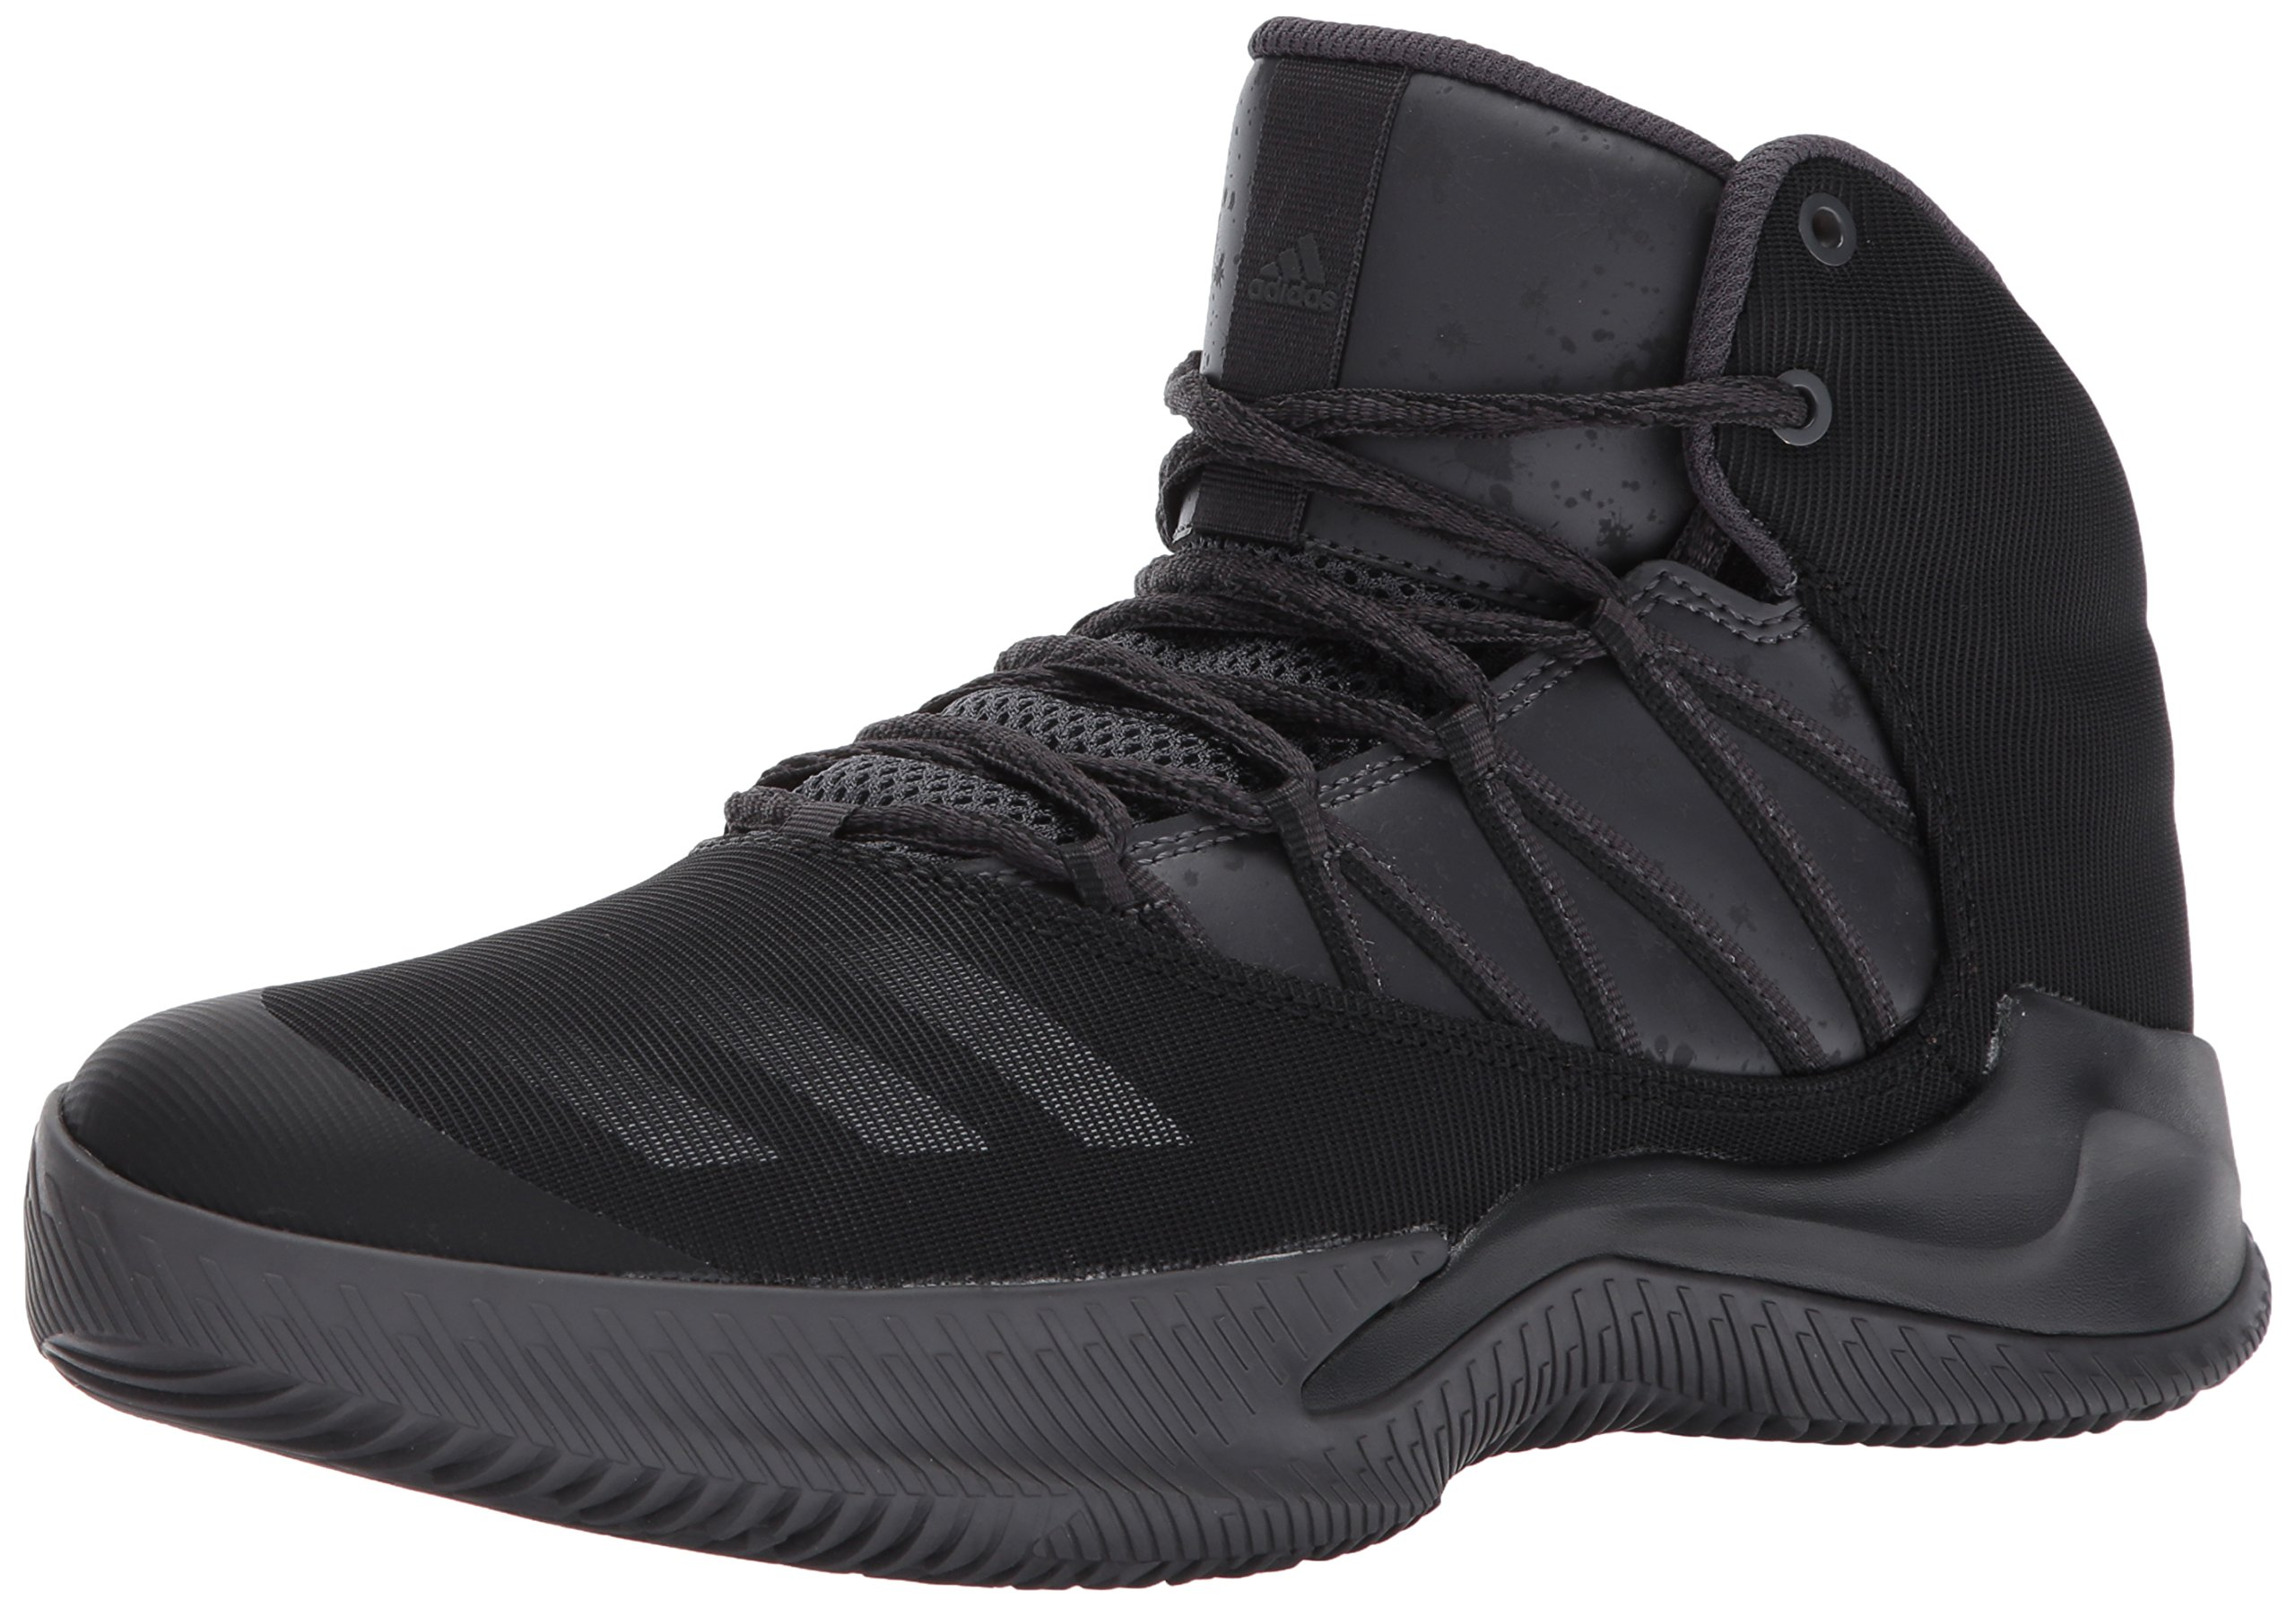 e3c63661a69b Galleon - Adidas Men s Ball 365 Inspired Basketball Shoe Utility Black White